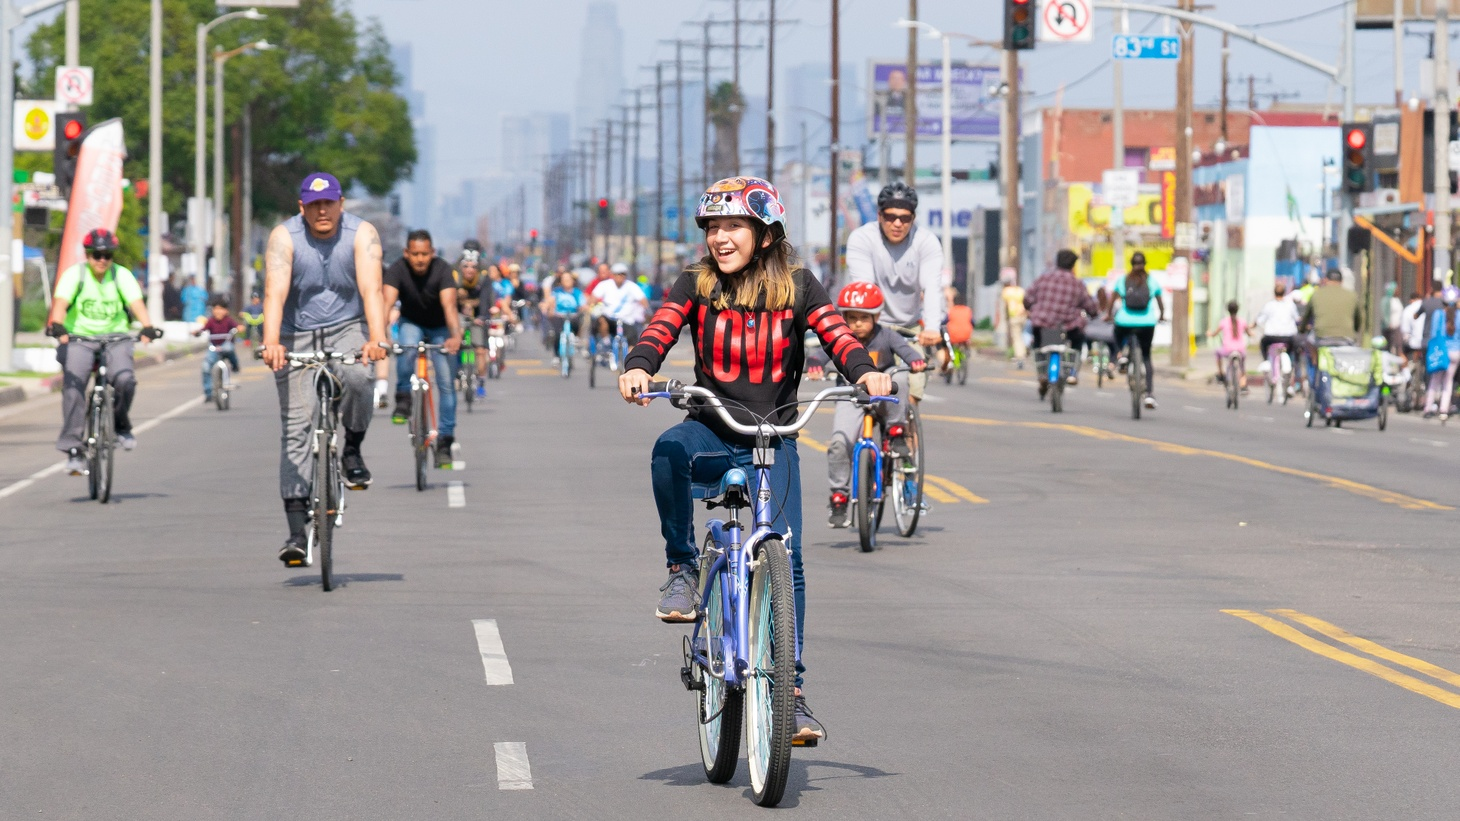 CicLAvia is back on August 15 as streets of Wilmington will open up for the first event in more than a year. A route of just over two miles connecting Banning Park and Wilmington Waterfront Park will become a playground for Angelenos who like to bike, skate, run, walk and skateboard.